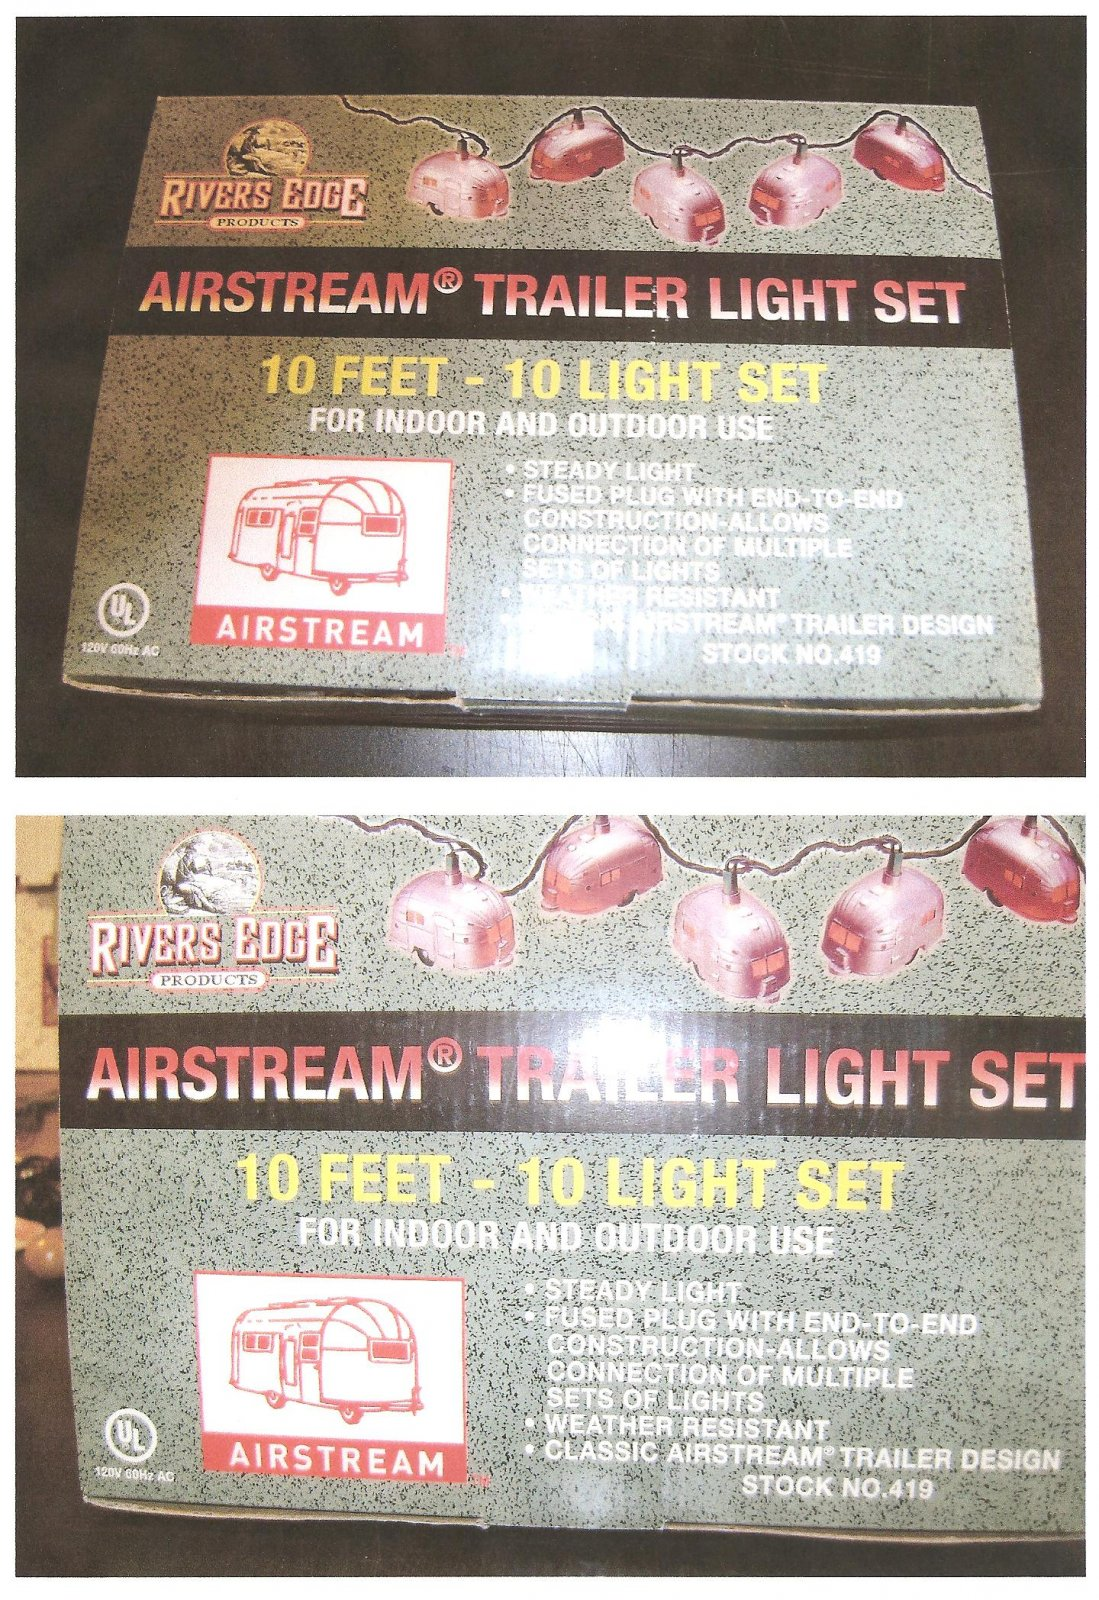 Click image for larger version  Name:Airstream Christmas Tree Lights.jpg Views:132 Size:528.6 KB ID:148458